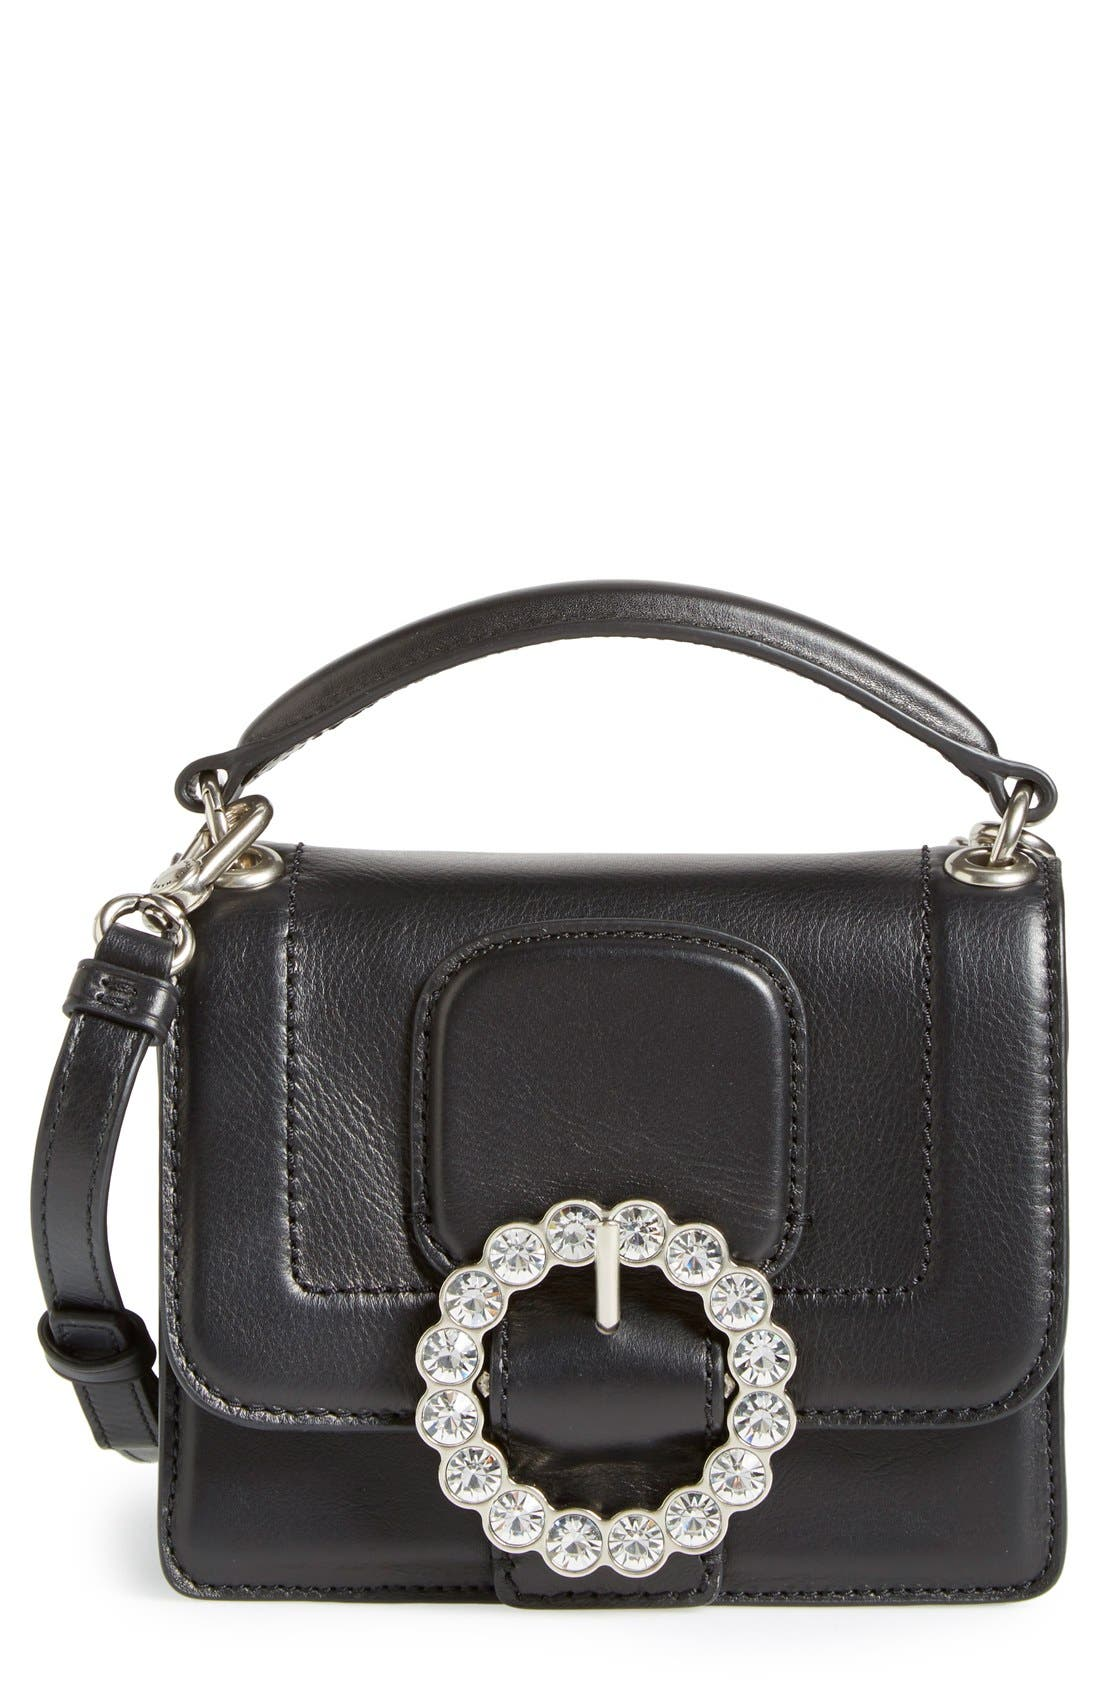 MARC JACOBS,                             MARC BY MARC JACOBS 'The Box' Crossbody Bag,                             Main thumbnail 1, color,                             001